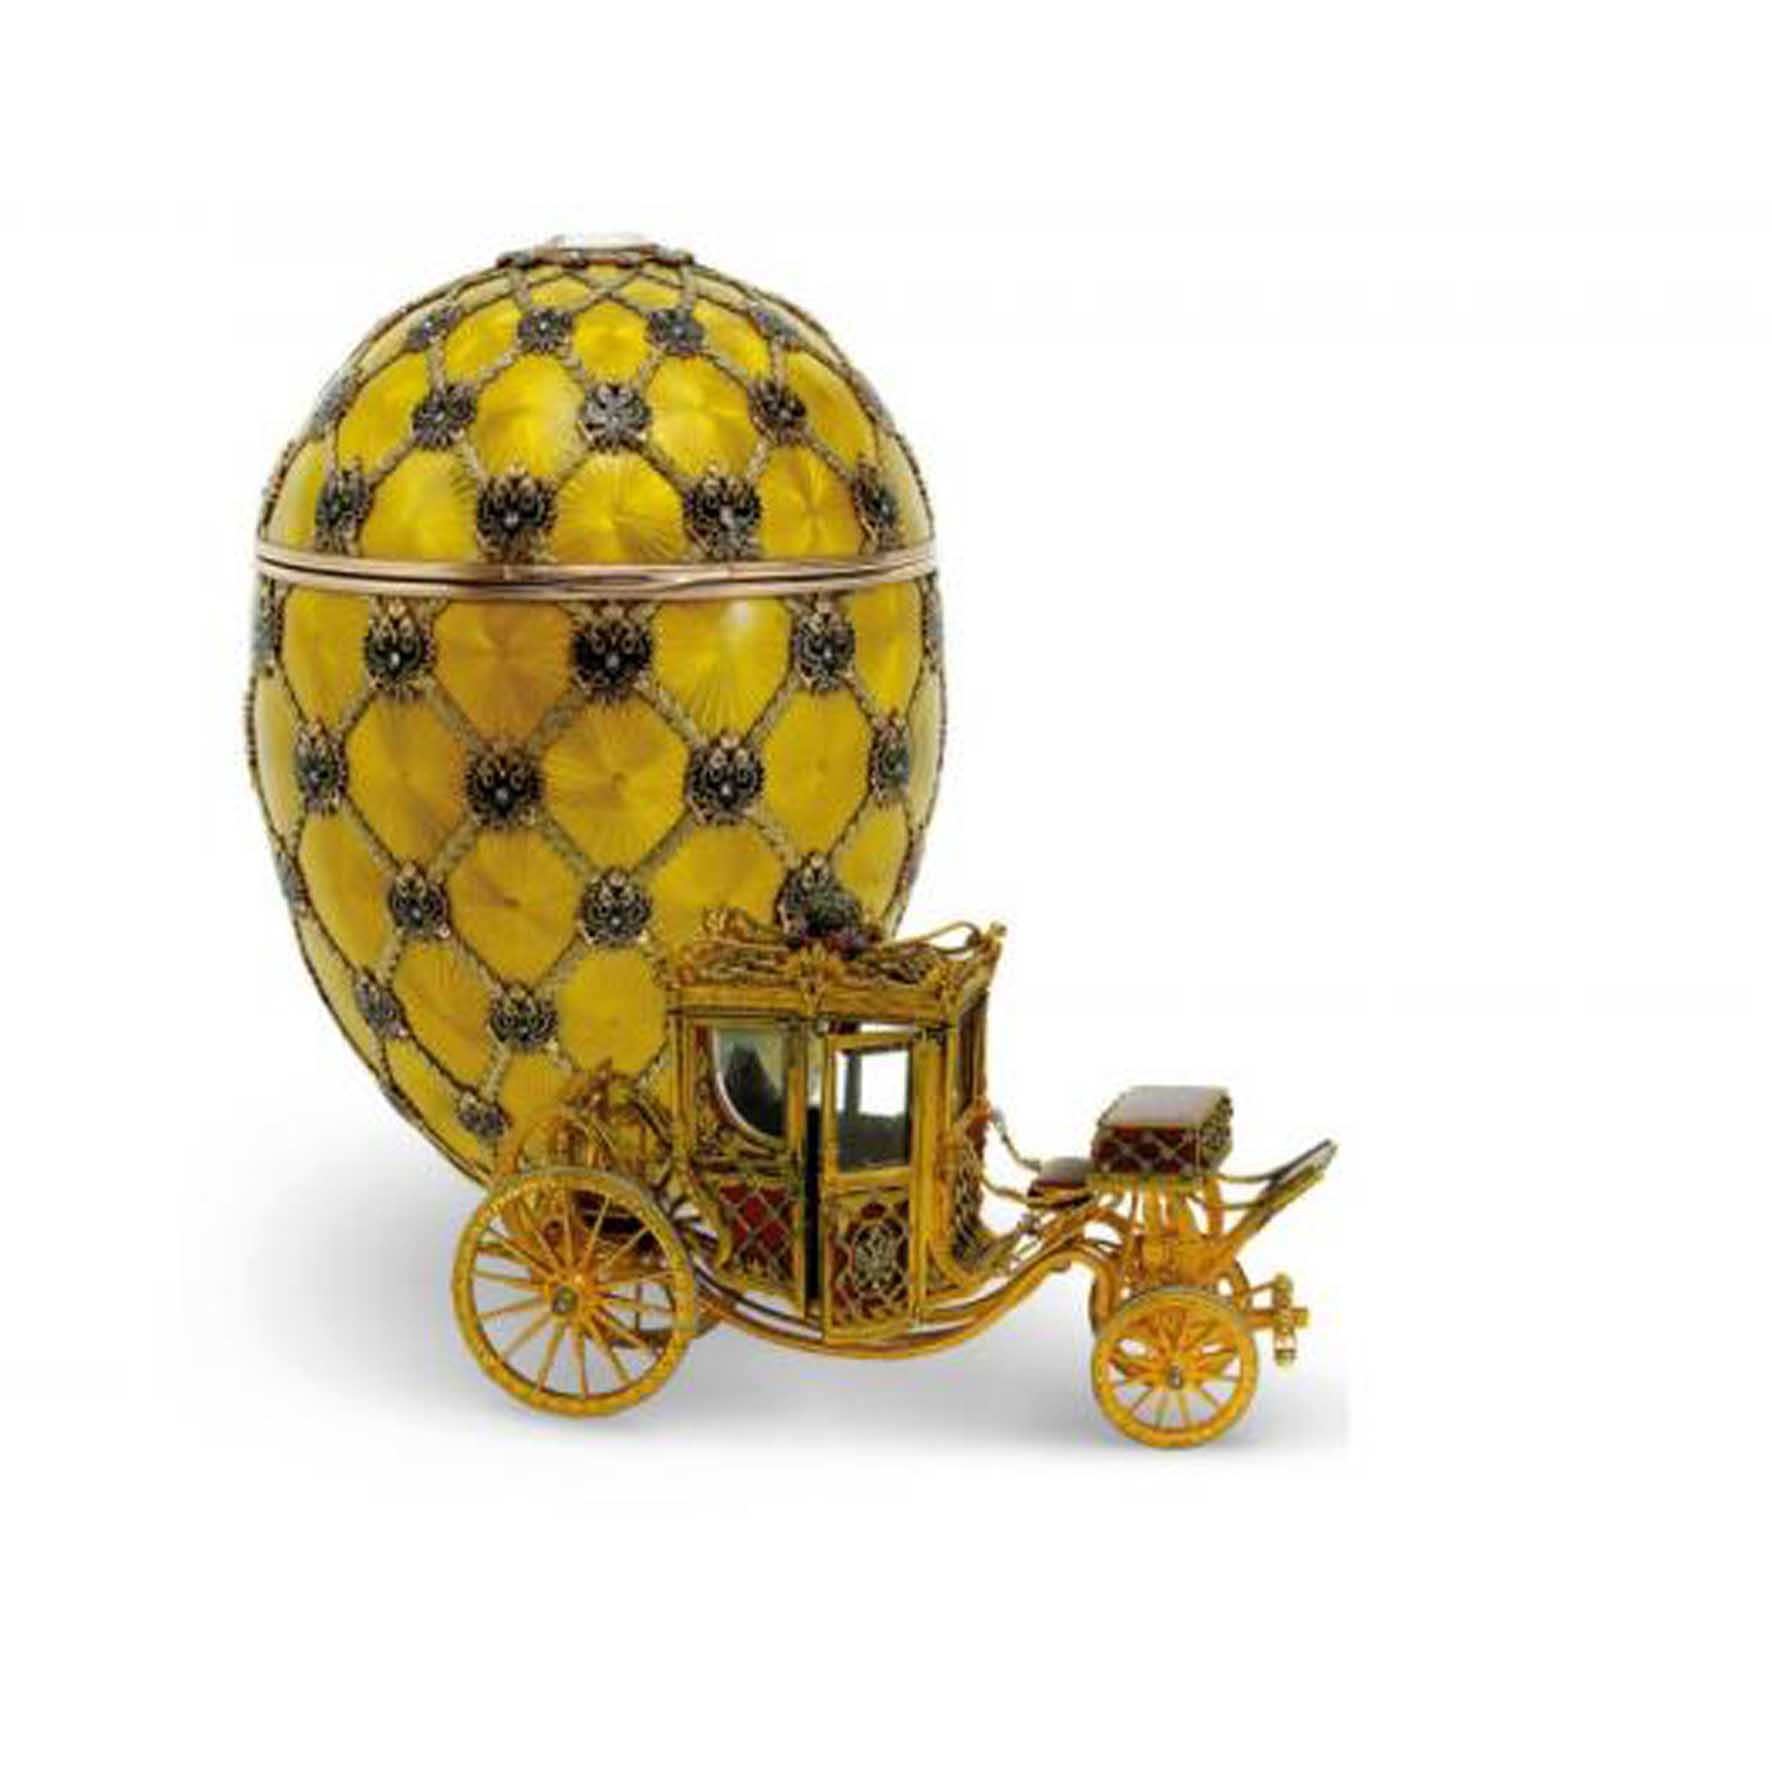 FABERGÉ AT THE VENARIA REALE. THE JEWELRY OF THE LAST CZARS